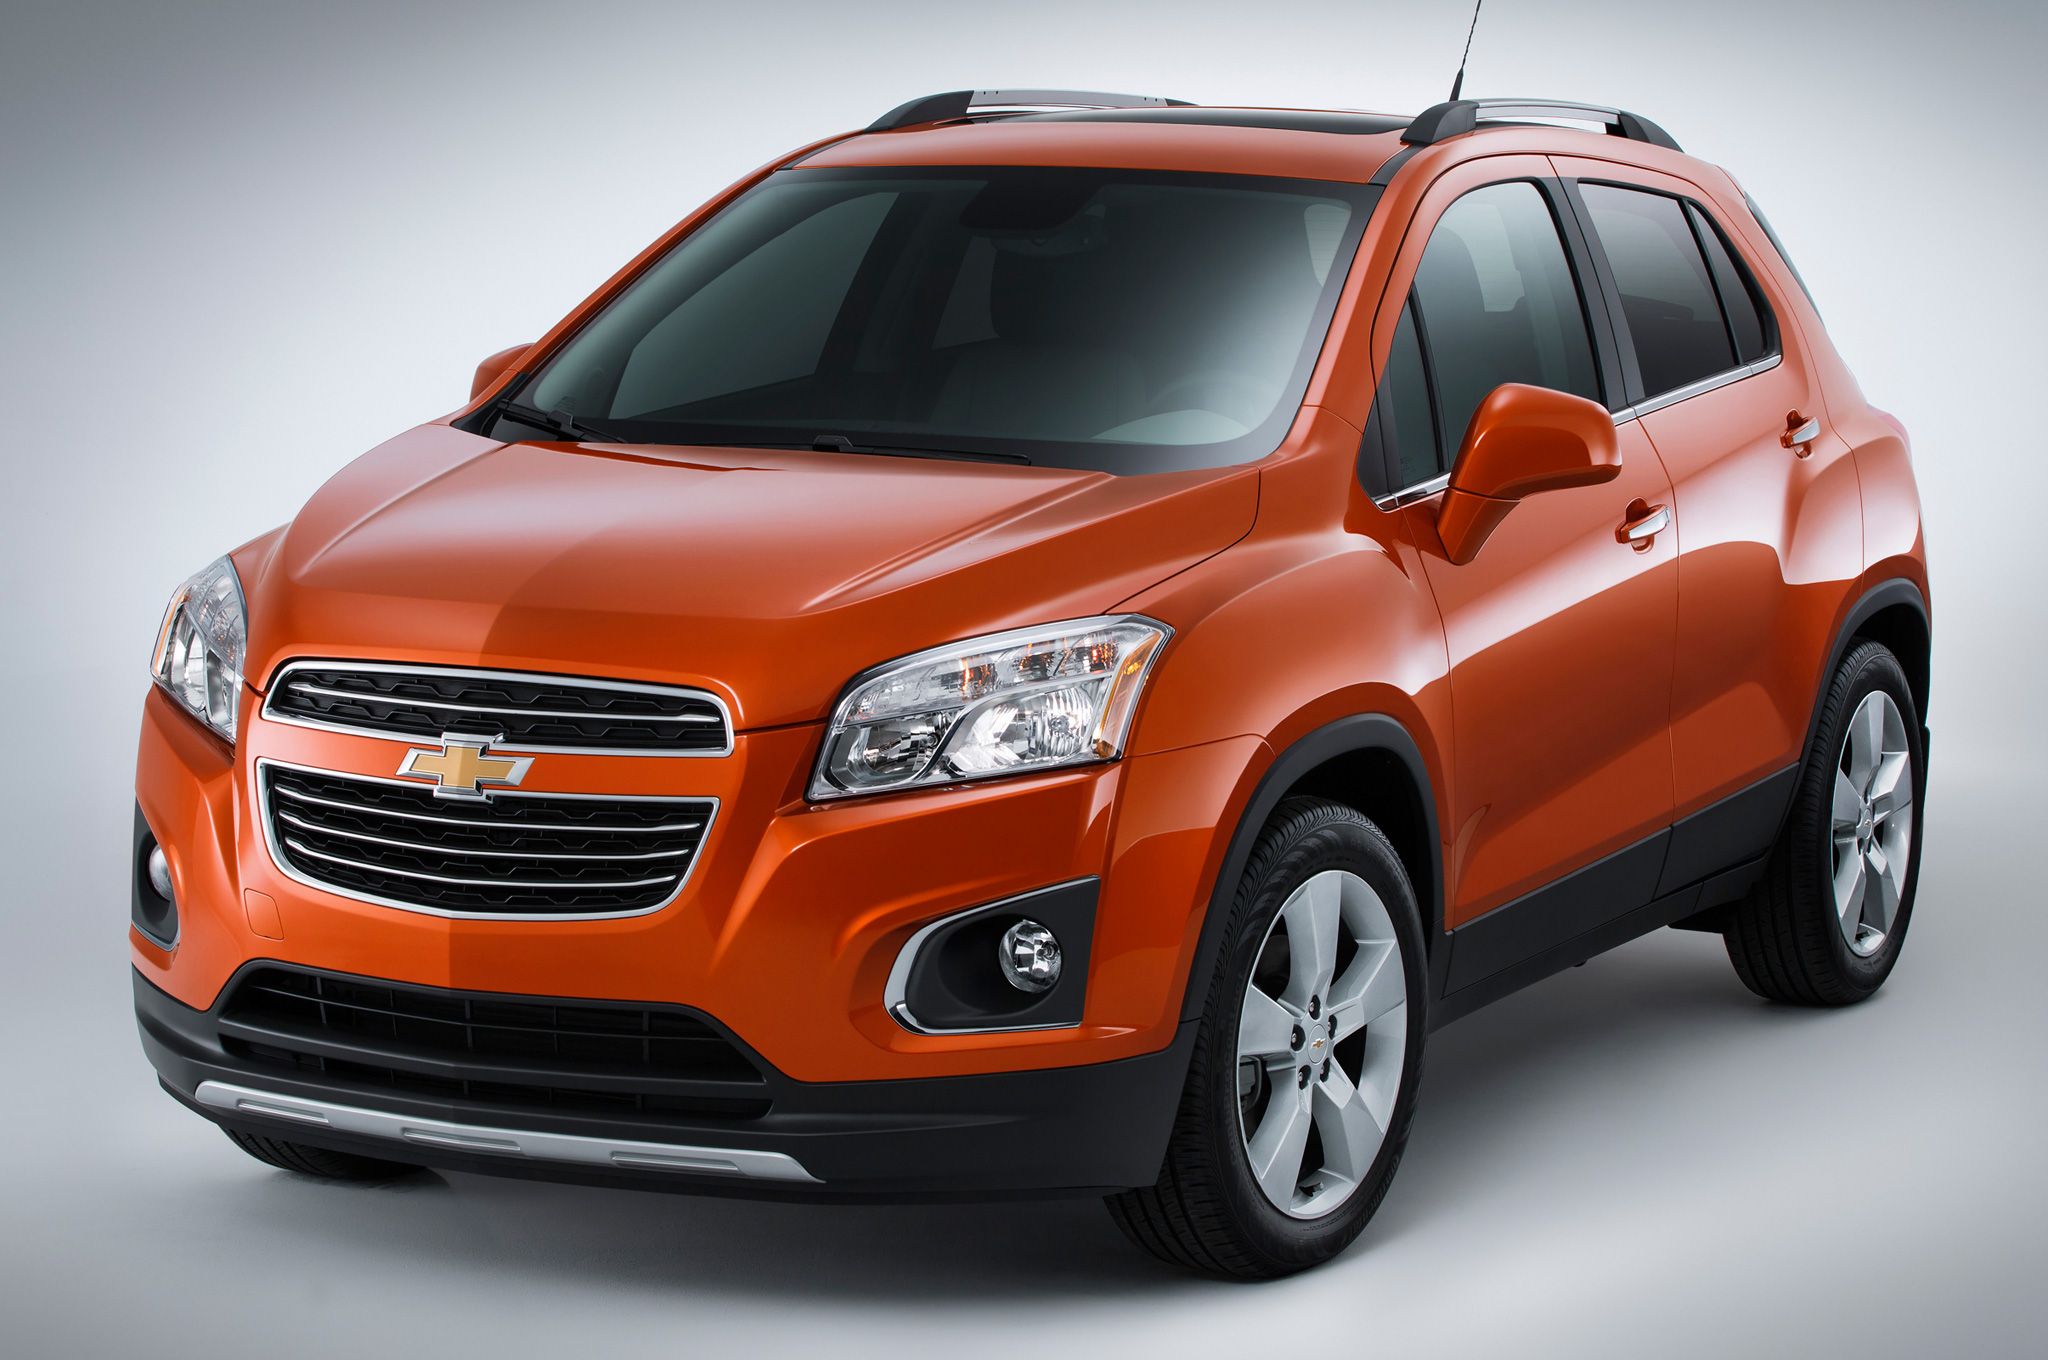 Featured Image of 2015 Chevrolet Trax